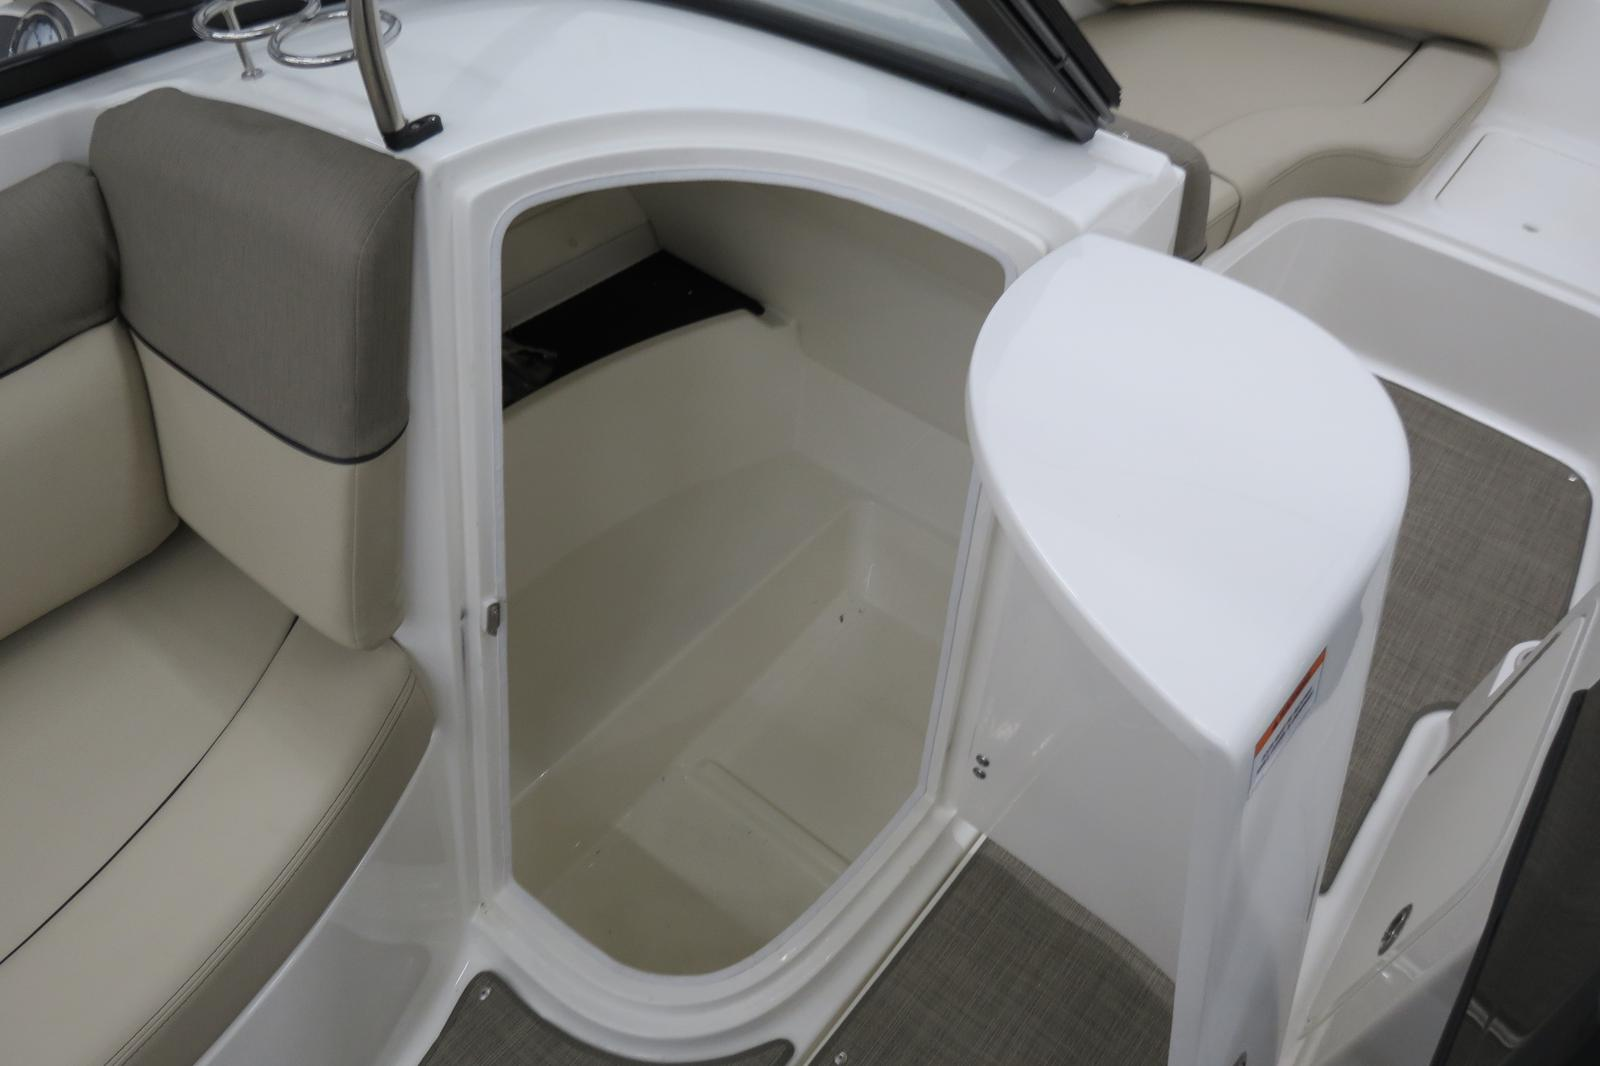 2019 Bayliner boat for sale, model of the boat is 215 Deck Boat & Image # 4 of 6